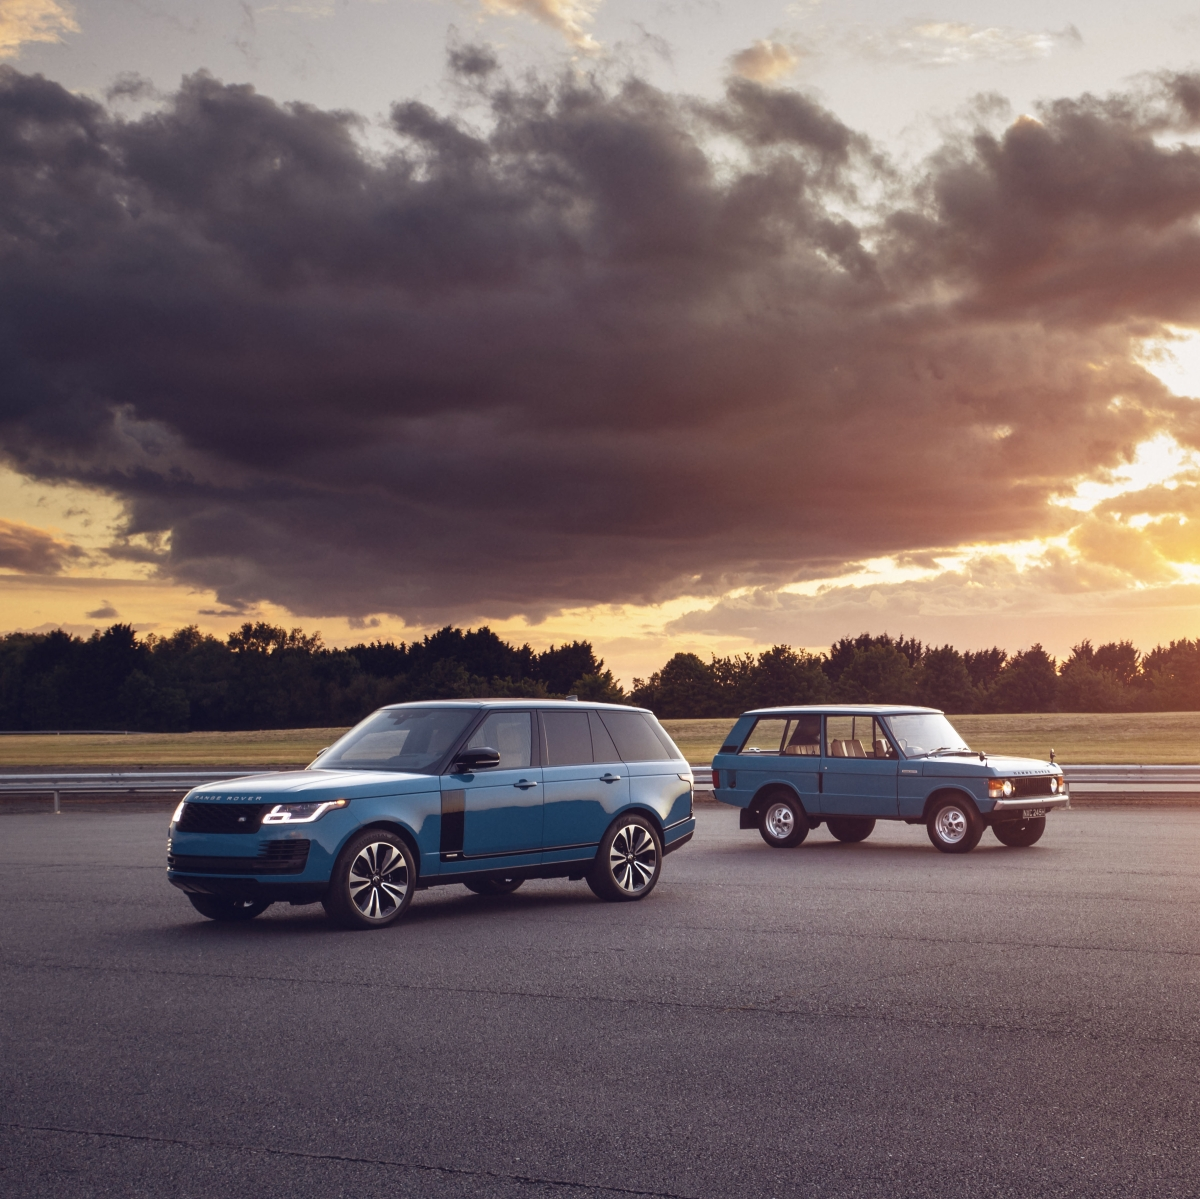 Exclusive Range Rover Fifty celebrates 50 years ofinnovation